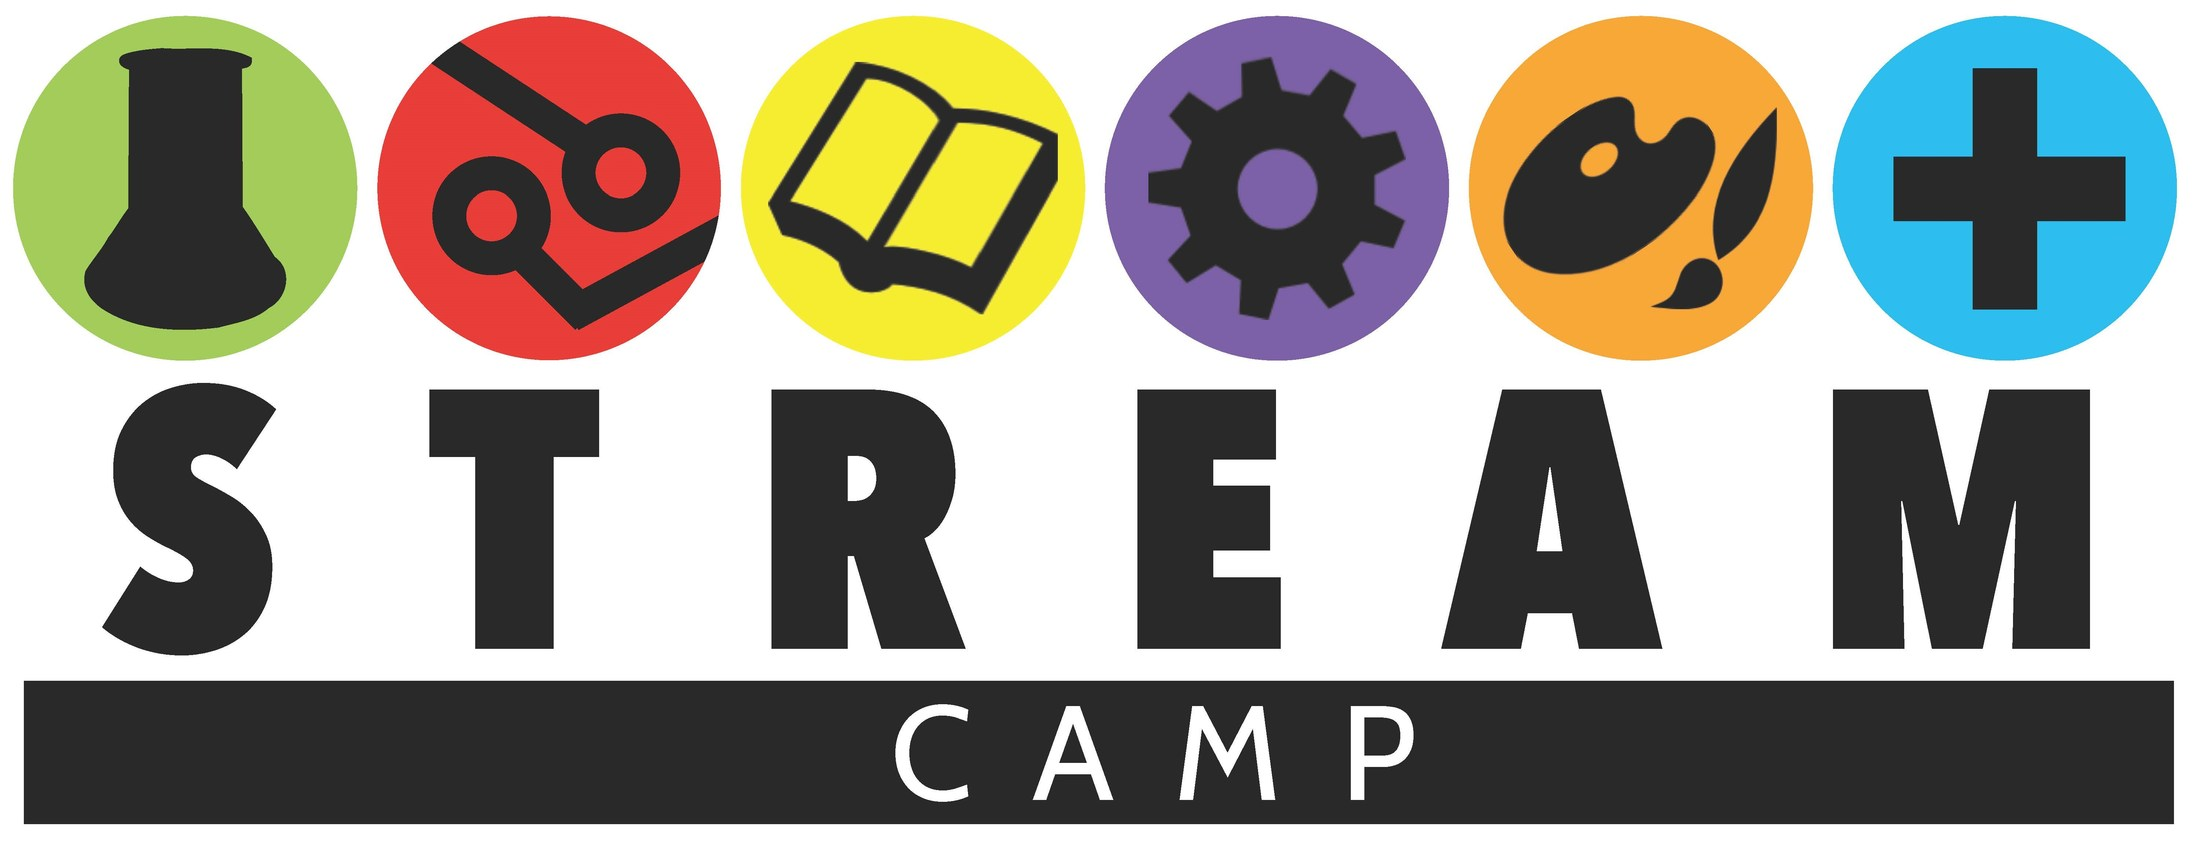 STREAM Camp logo